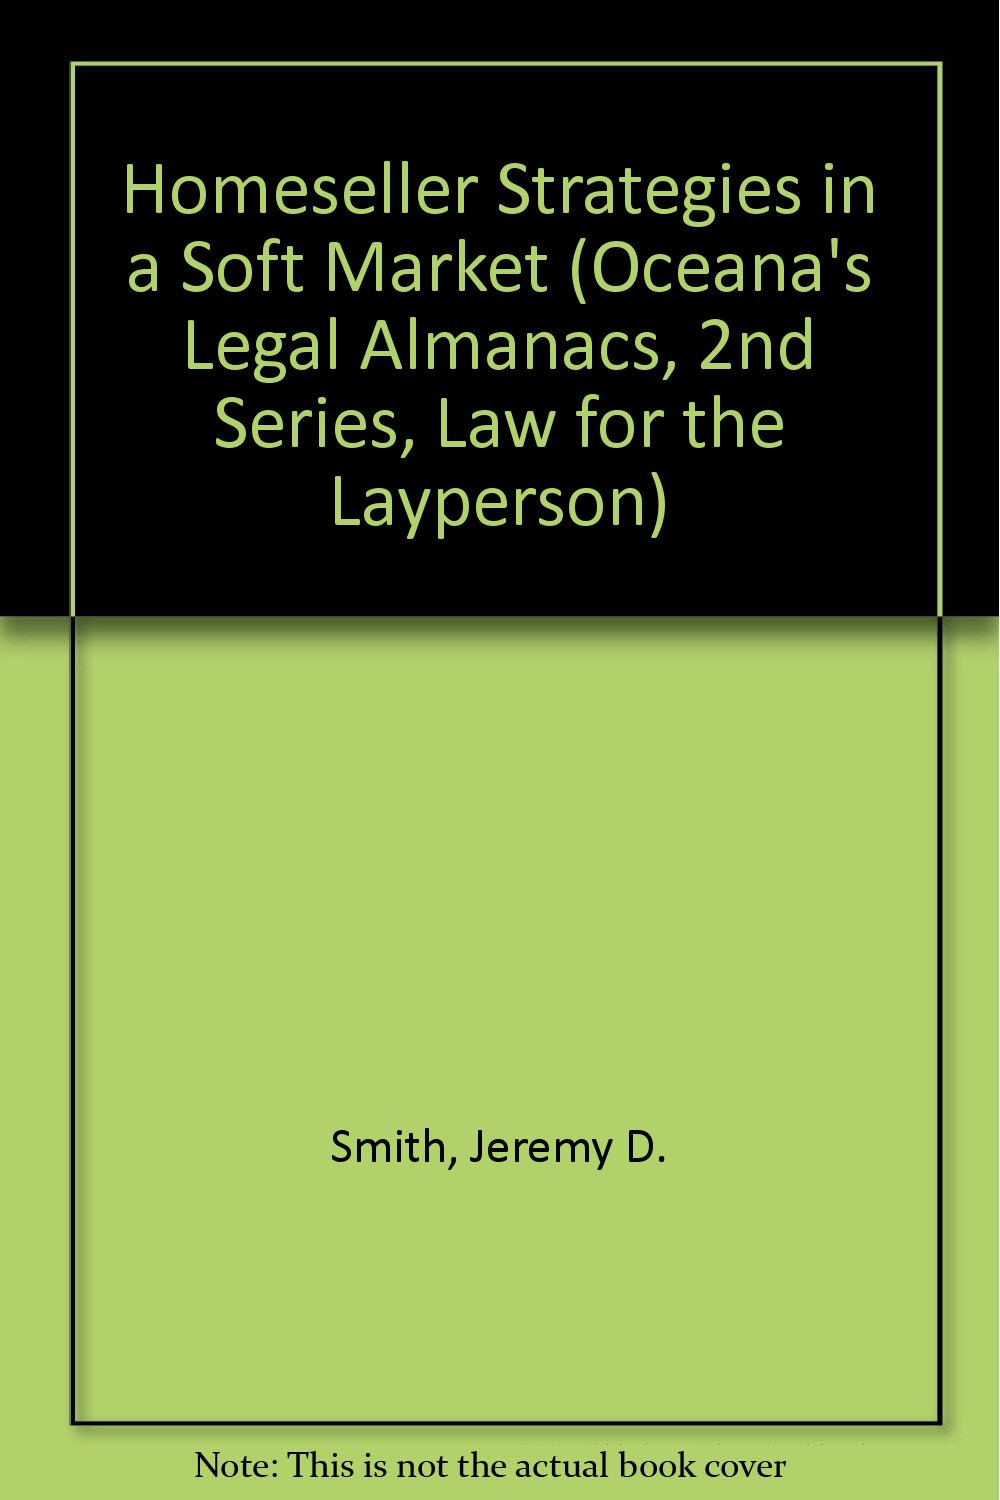 Homeseller Strategies in a Soft Market (Oceana's Legal Almanacs, 2nd  Series, Law for the Layperson): Jeremy D. Smith: 9780379111835: Amazon.com:  Books